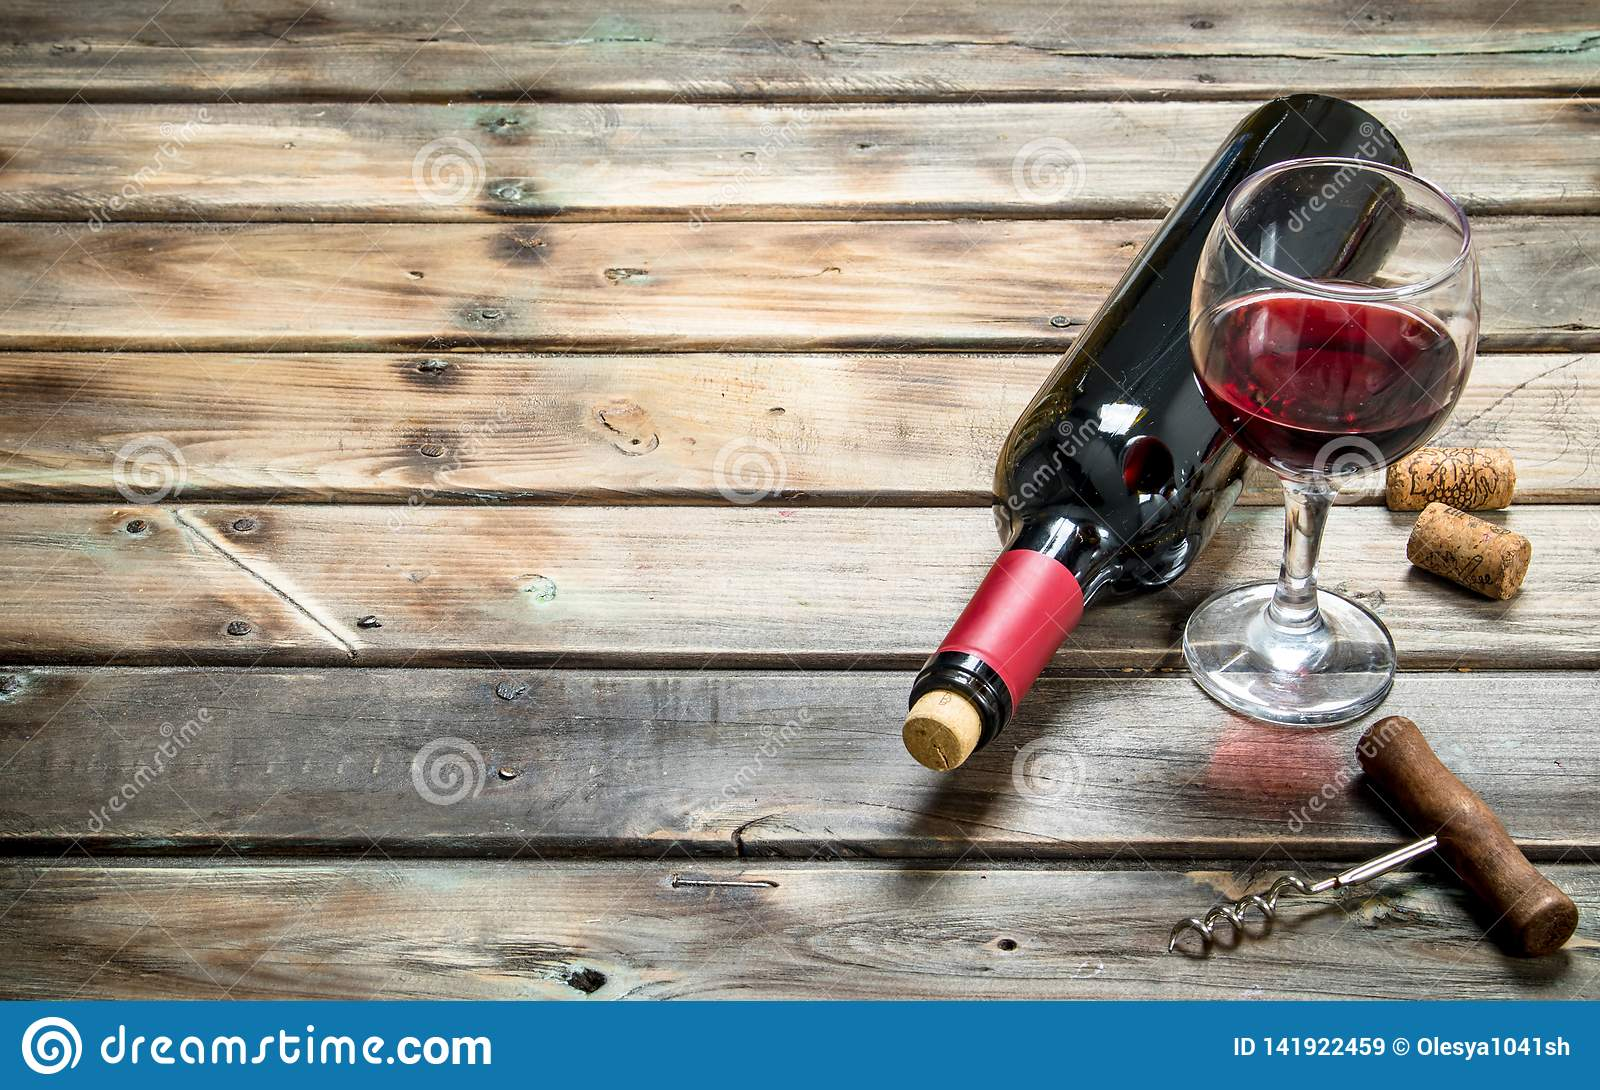 Red wine in a wine glass with a corkscrew